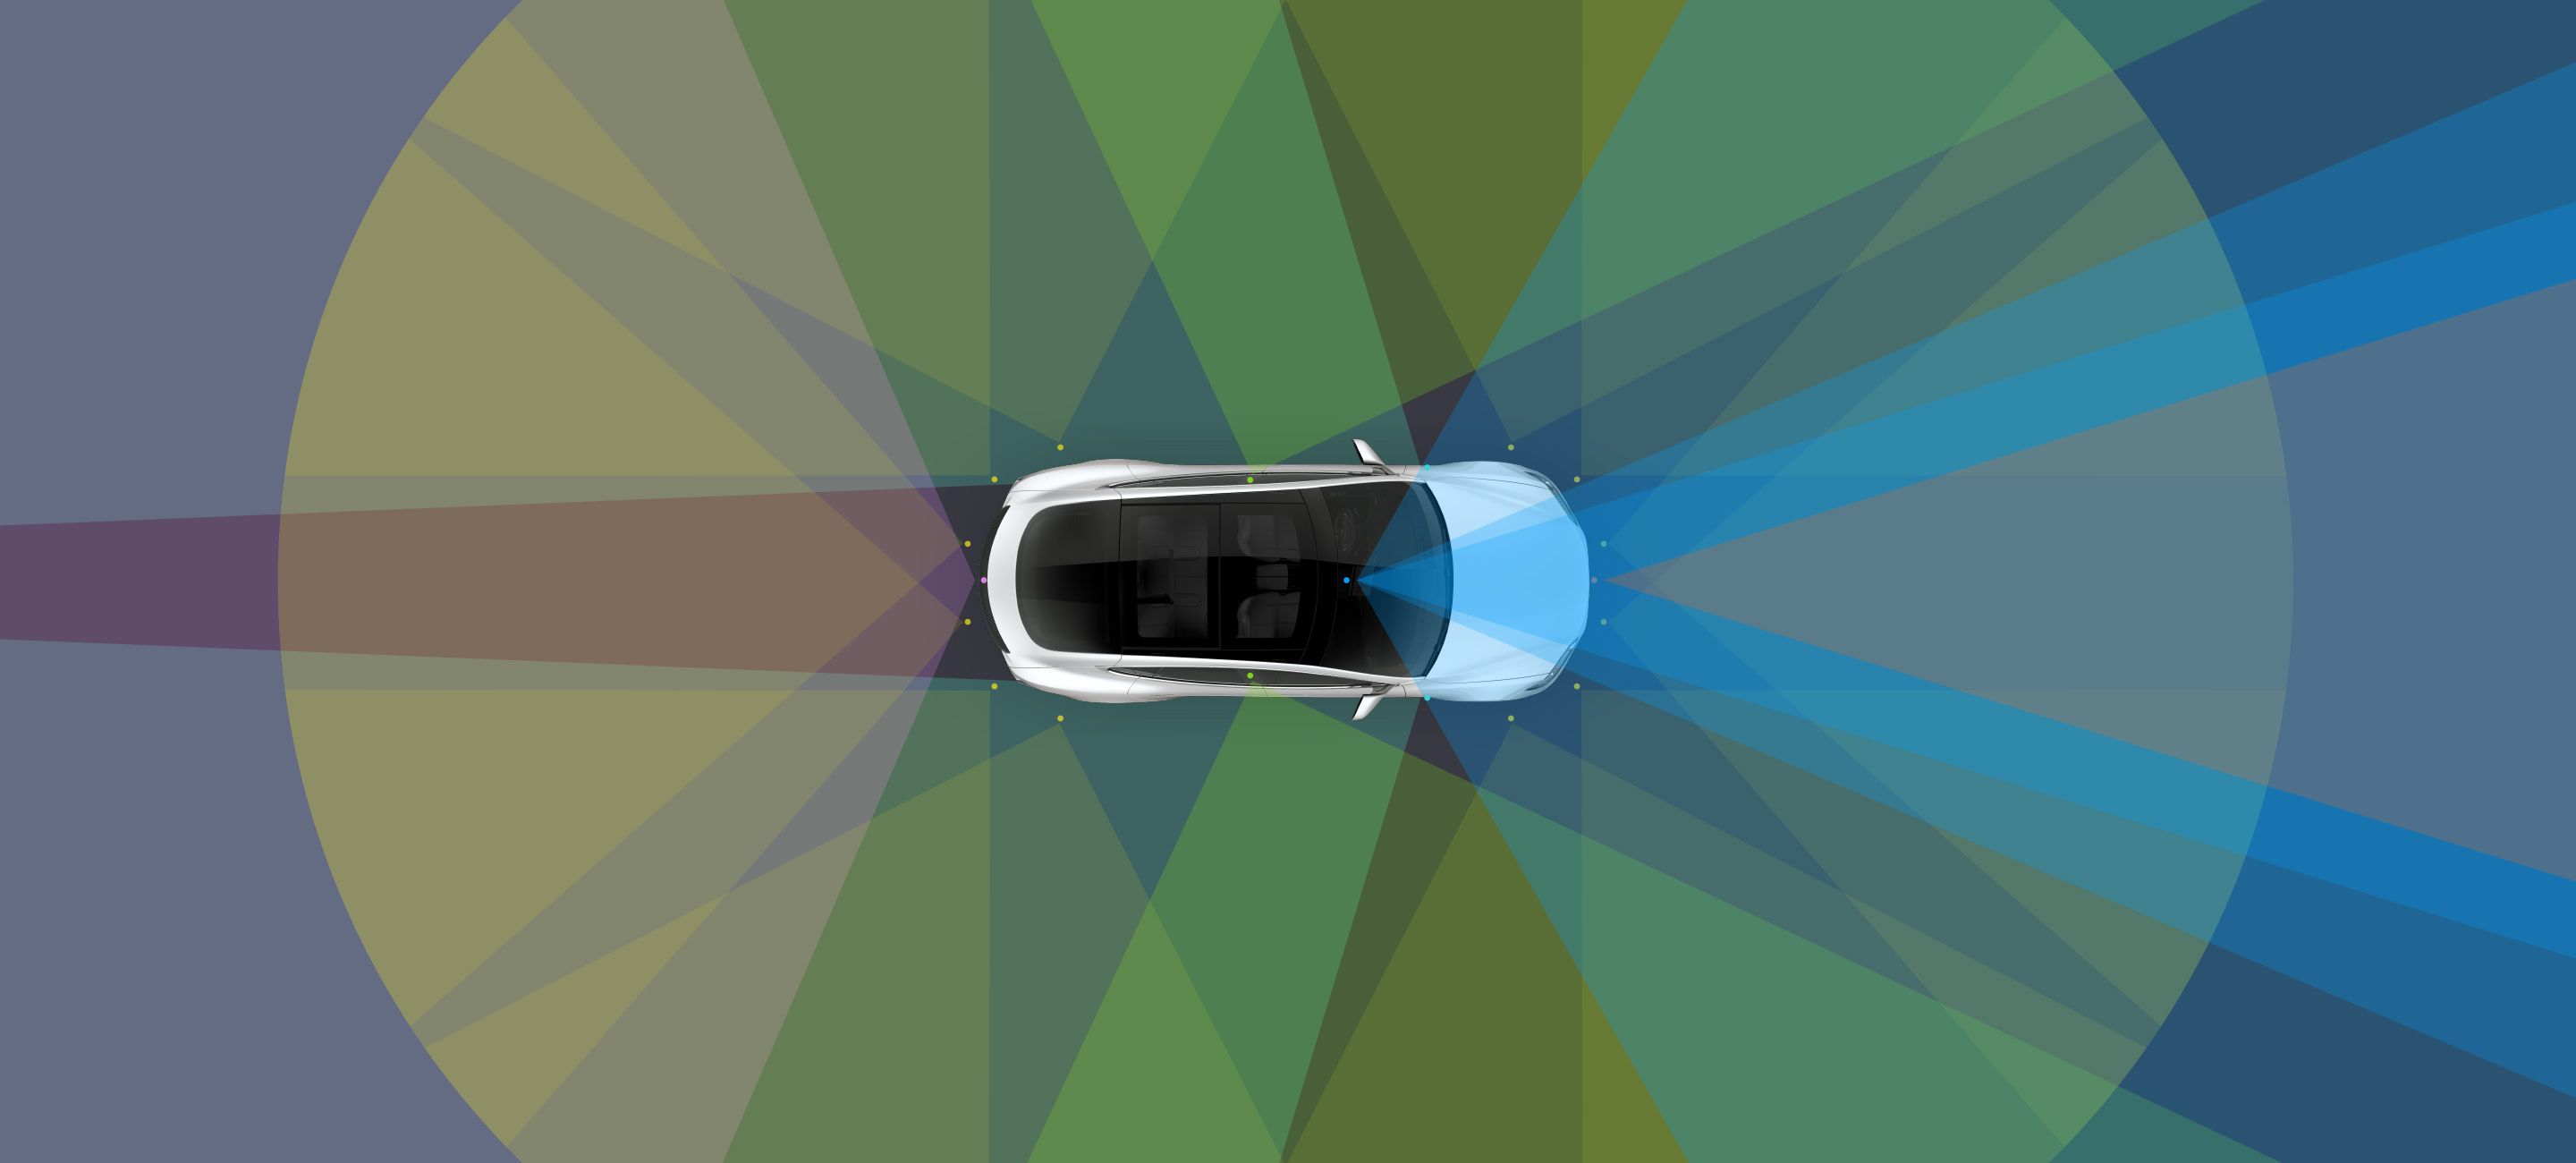 Tesla announced Wednesday, October 19, 2016 that all new cars will be equipped with self-driving hardware.